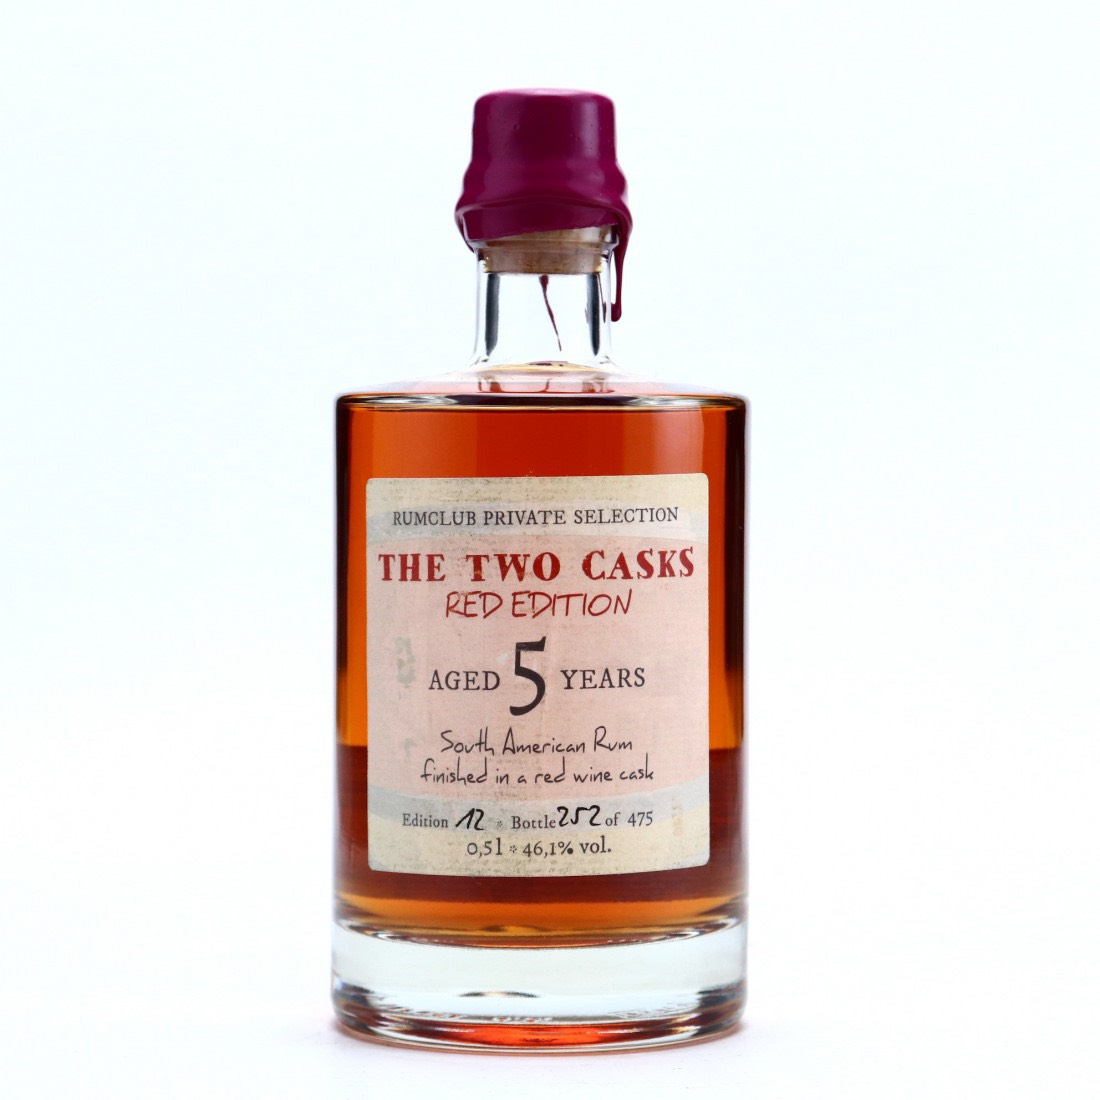 Bottle image of Rumclub Private Selection Ed. 12 The Two Casks Red Edition